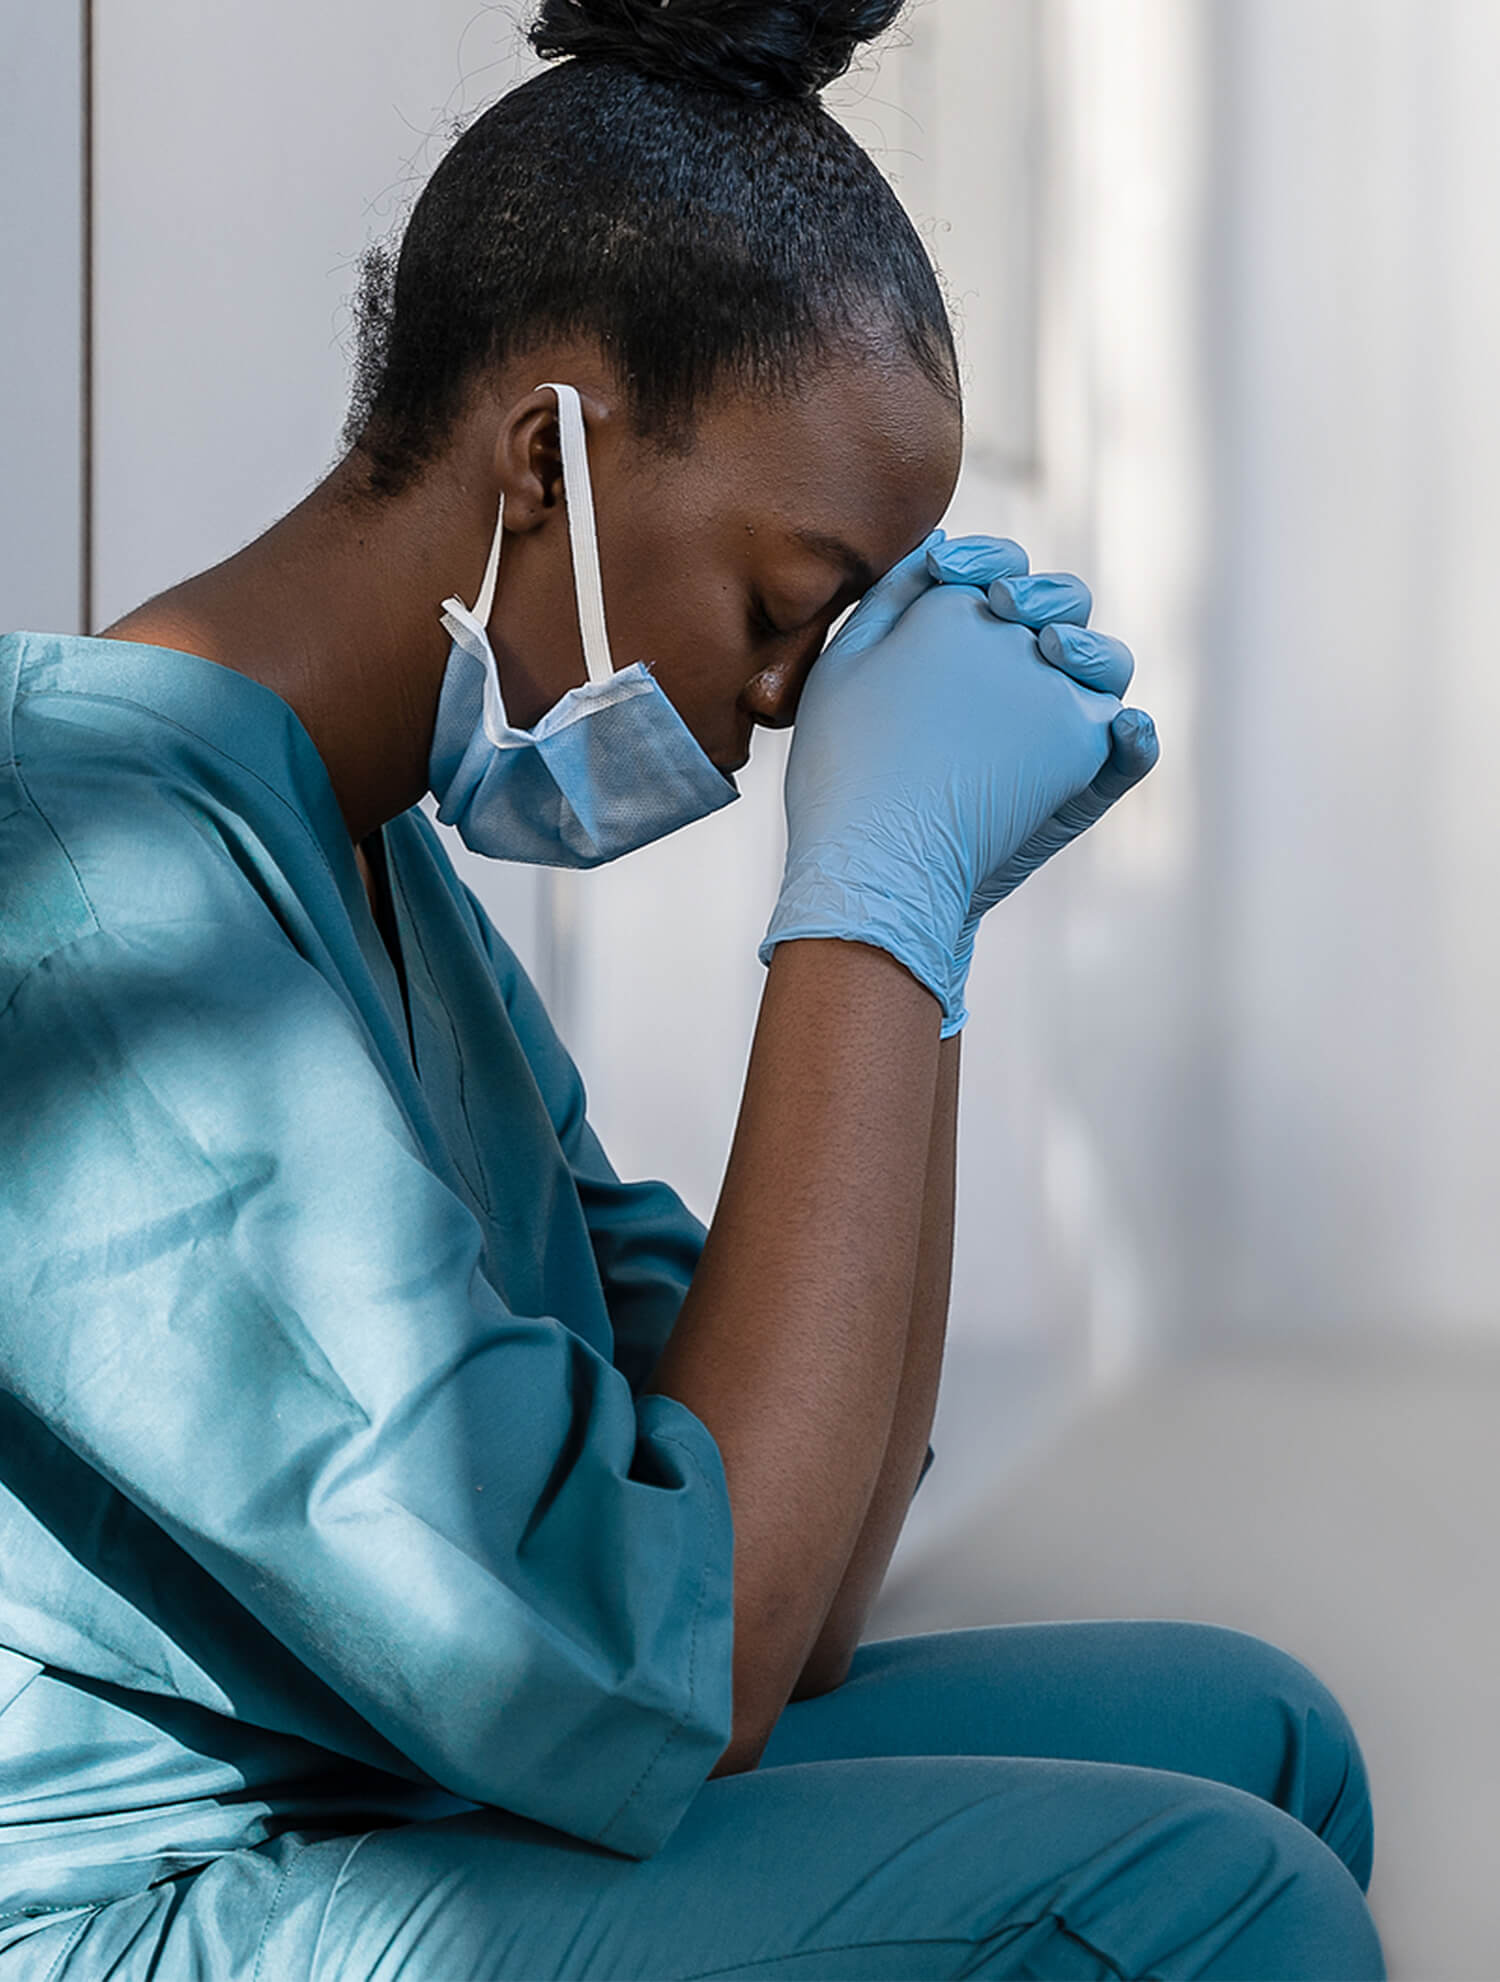 Black doctor in blue scrubs looking down in distress. Working with a stress therapist can help you manage motherhood, work, and school. Consider how cbt for stress can assist you today. Begin stress therapy in Riverside, Berwyn, Forest Park, and Chicago soon for guidance.